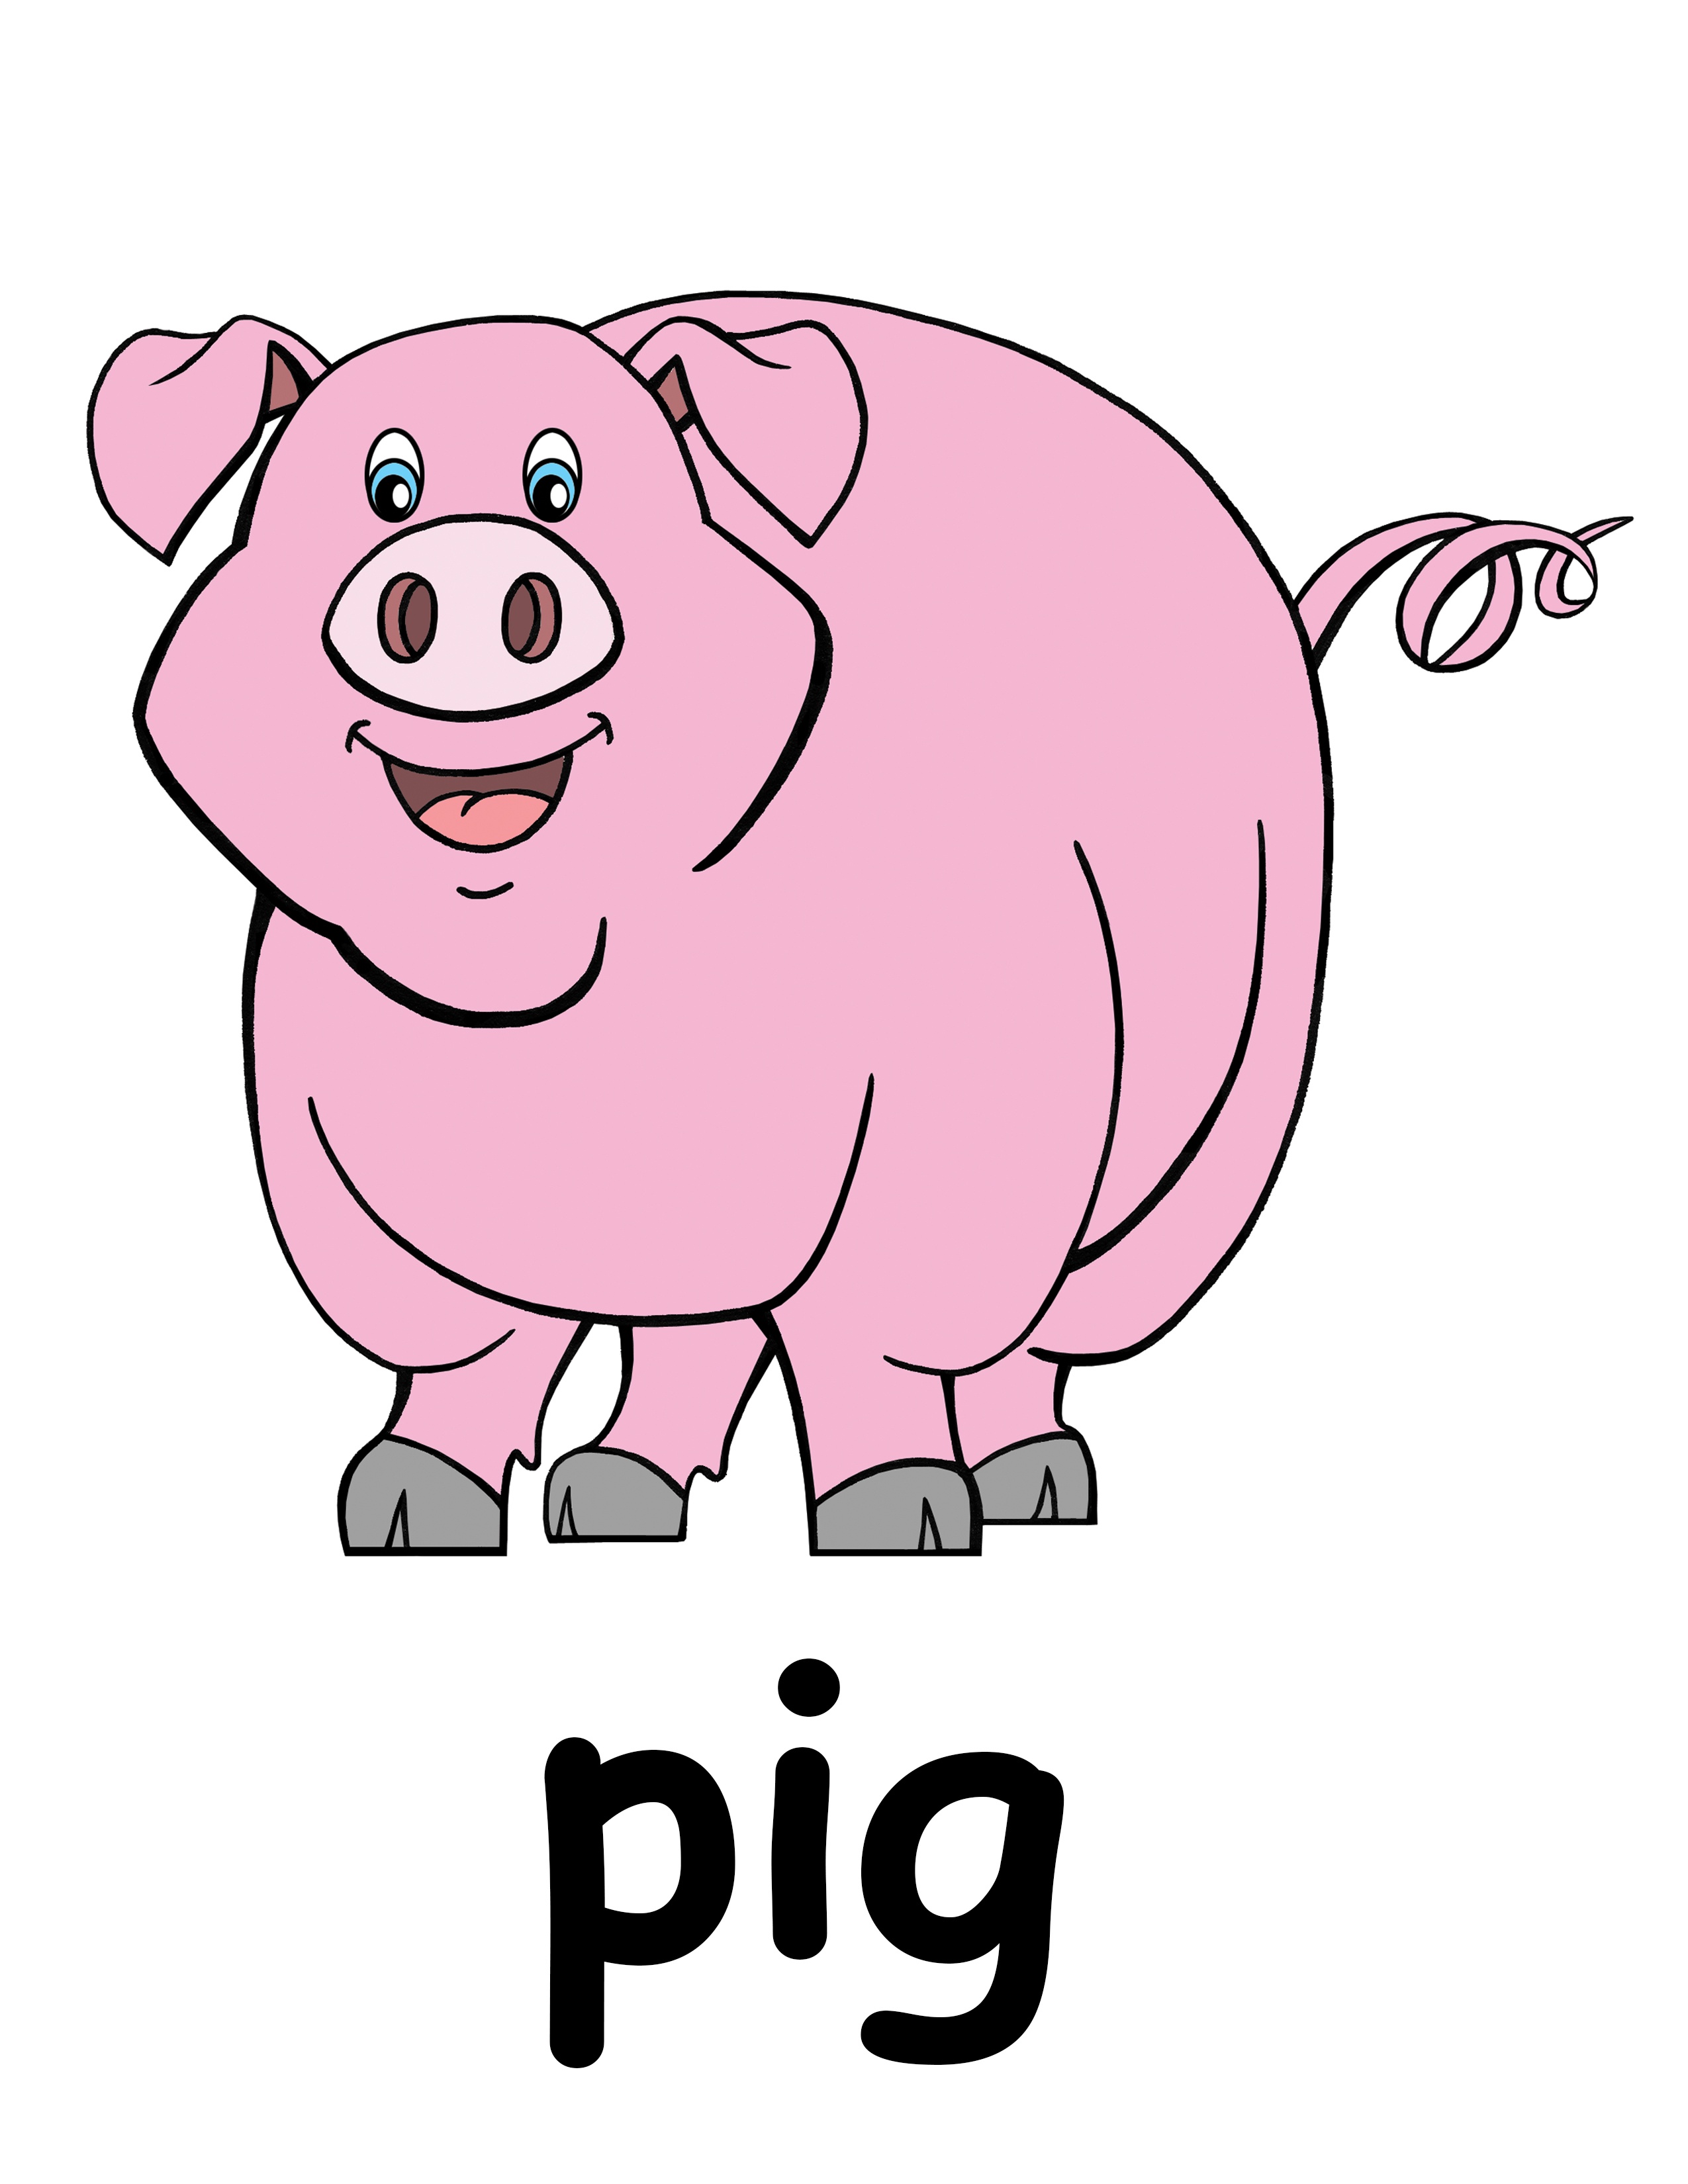 Related Pictures Pig Bbq Images Clipart Free Clip Art Images